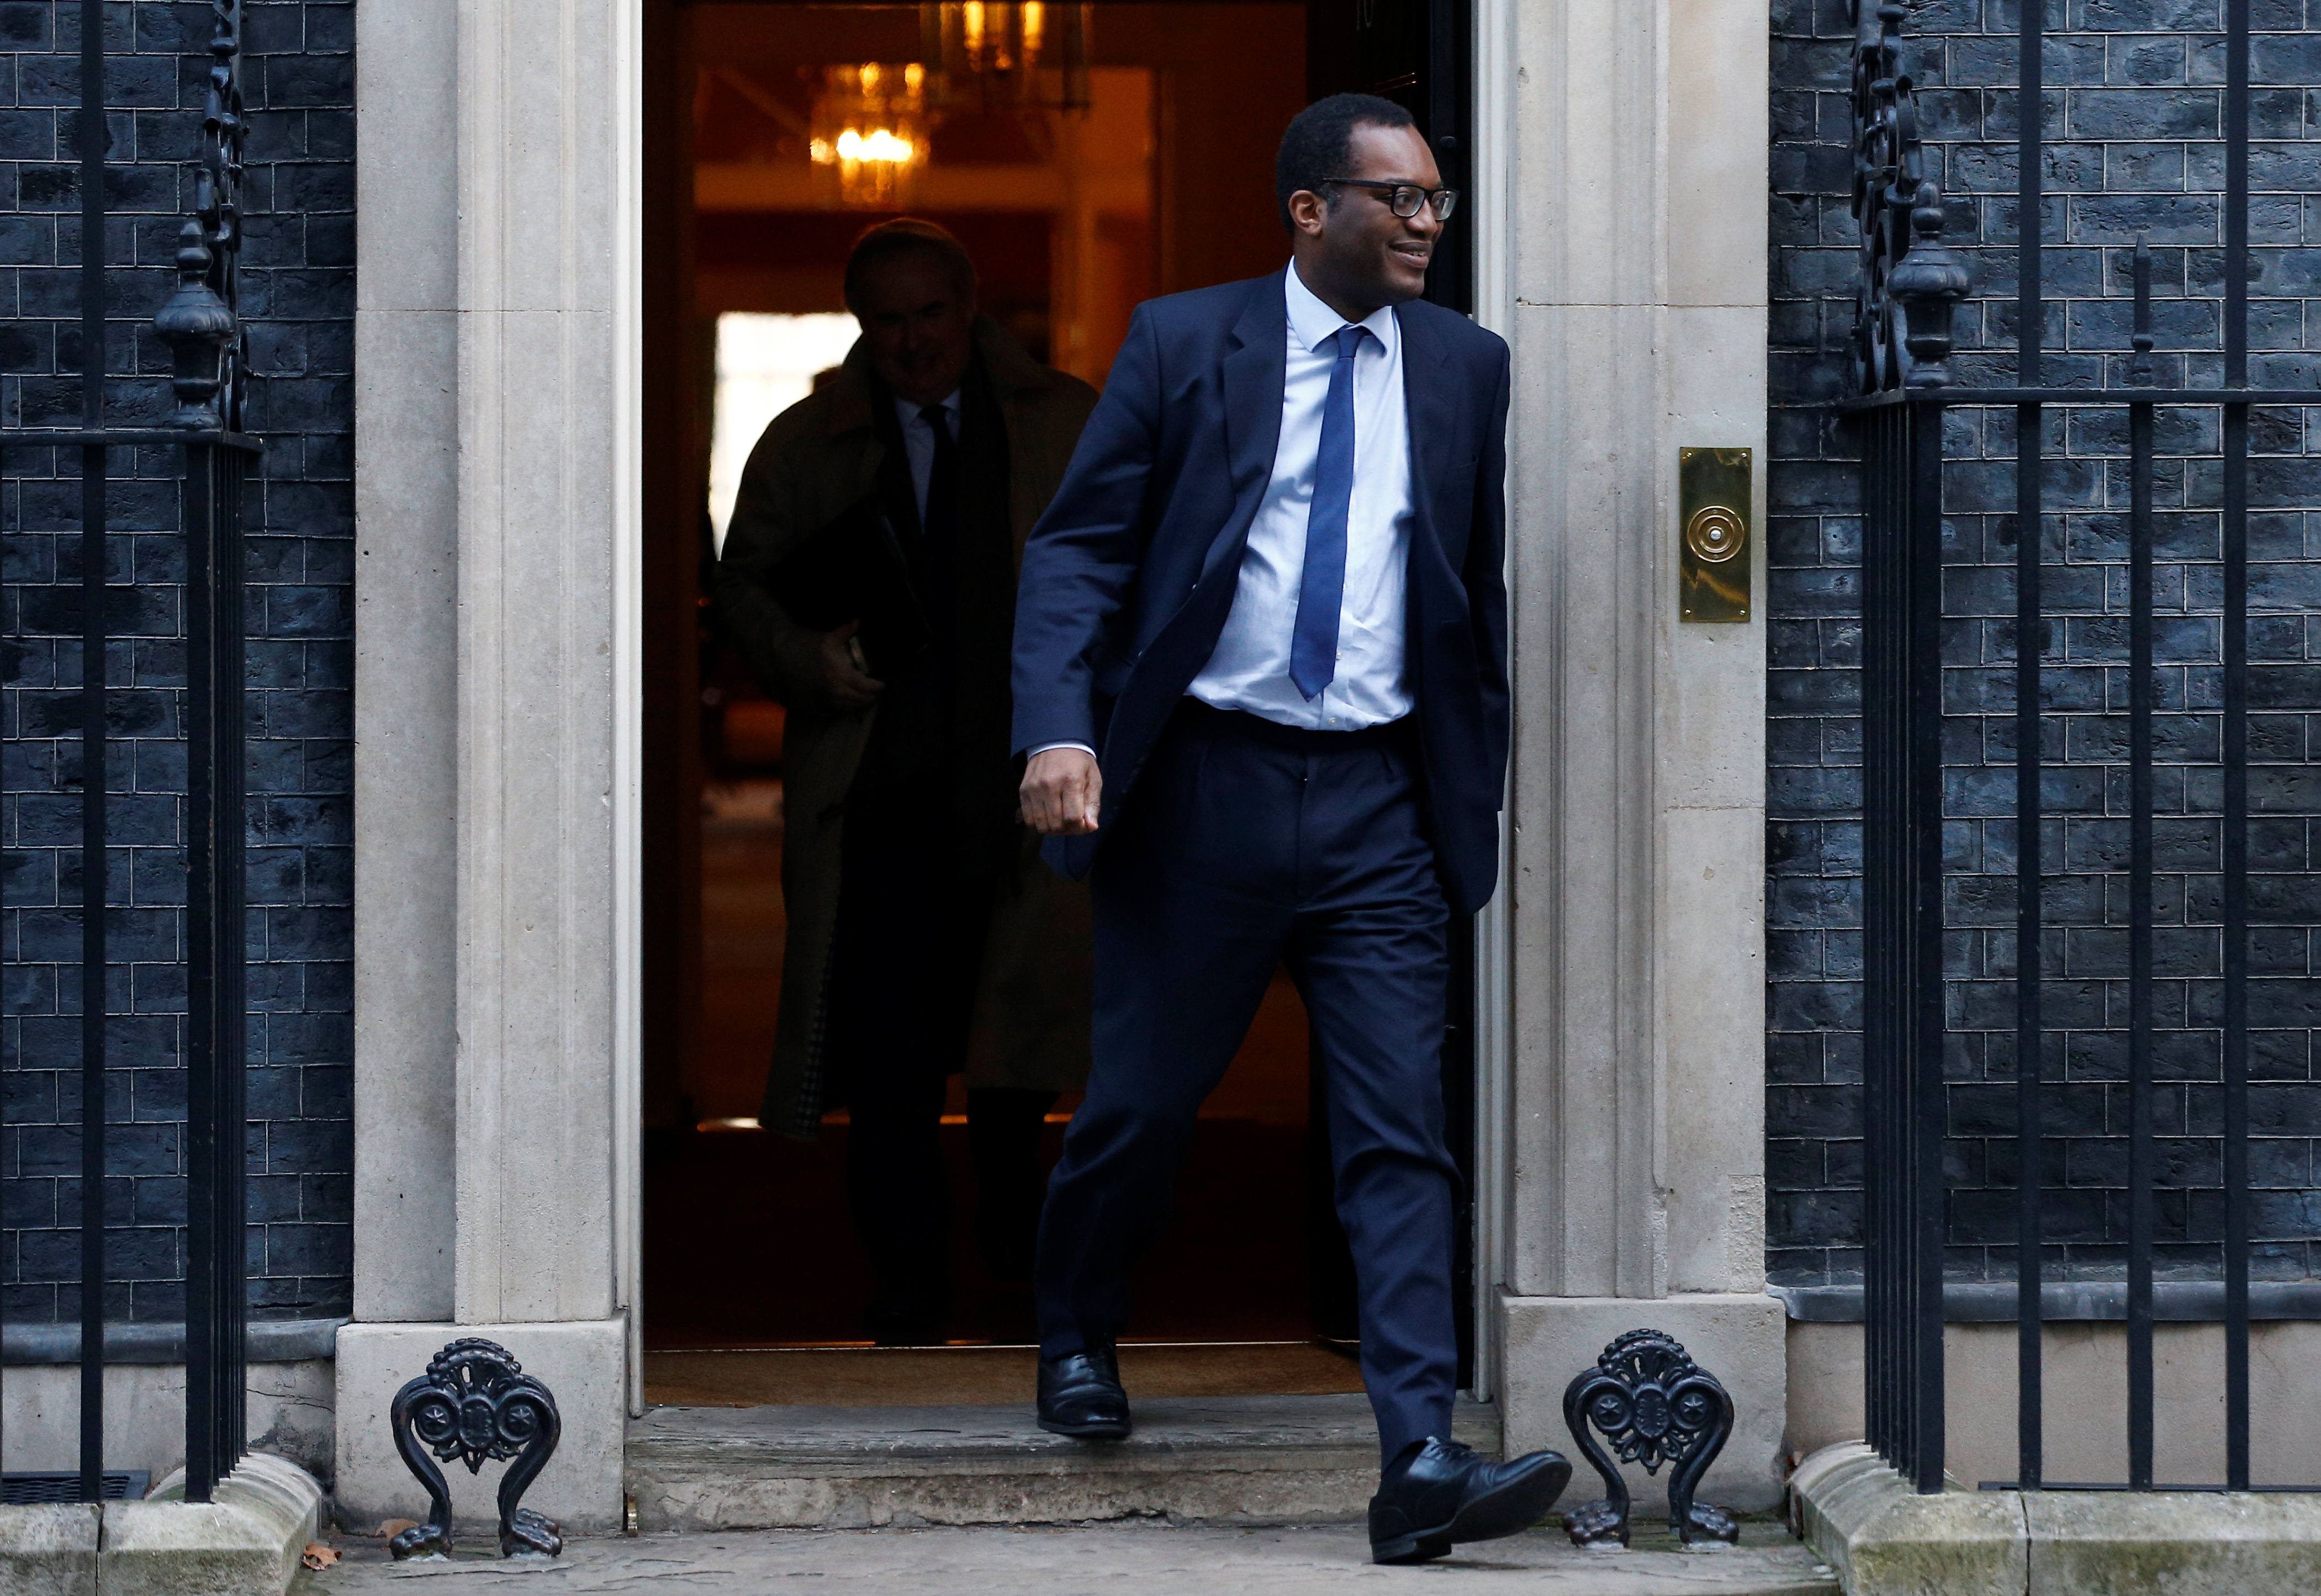 Britain's Business, Energy and Clean Growth Minister Kwasi Kwarteng is seen outside 10 Downing Street London, Britain, January 21, 2020. REUTERS/Henry Nicholls